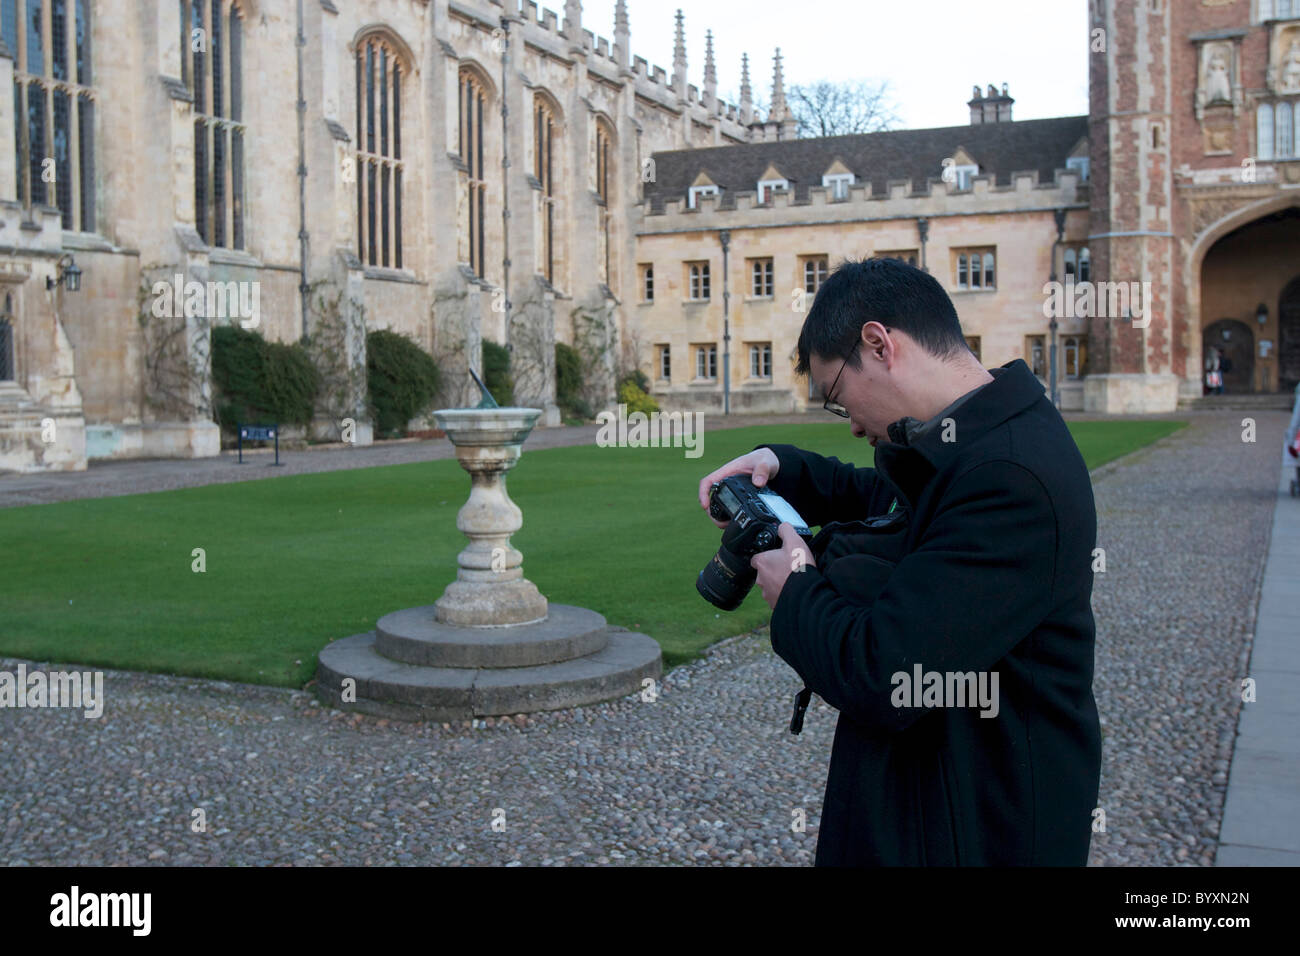 Tourist looking at the back of his digital camera in the Great Court of Trinity College Cambridge - Stock Image